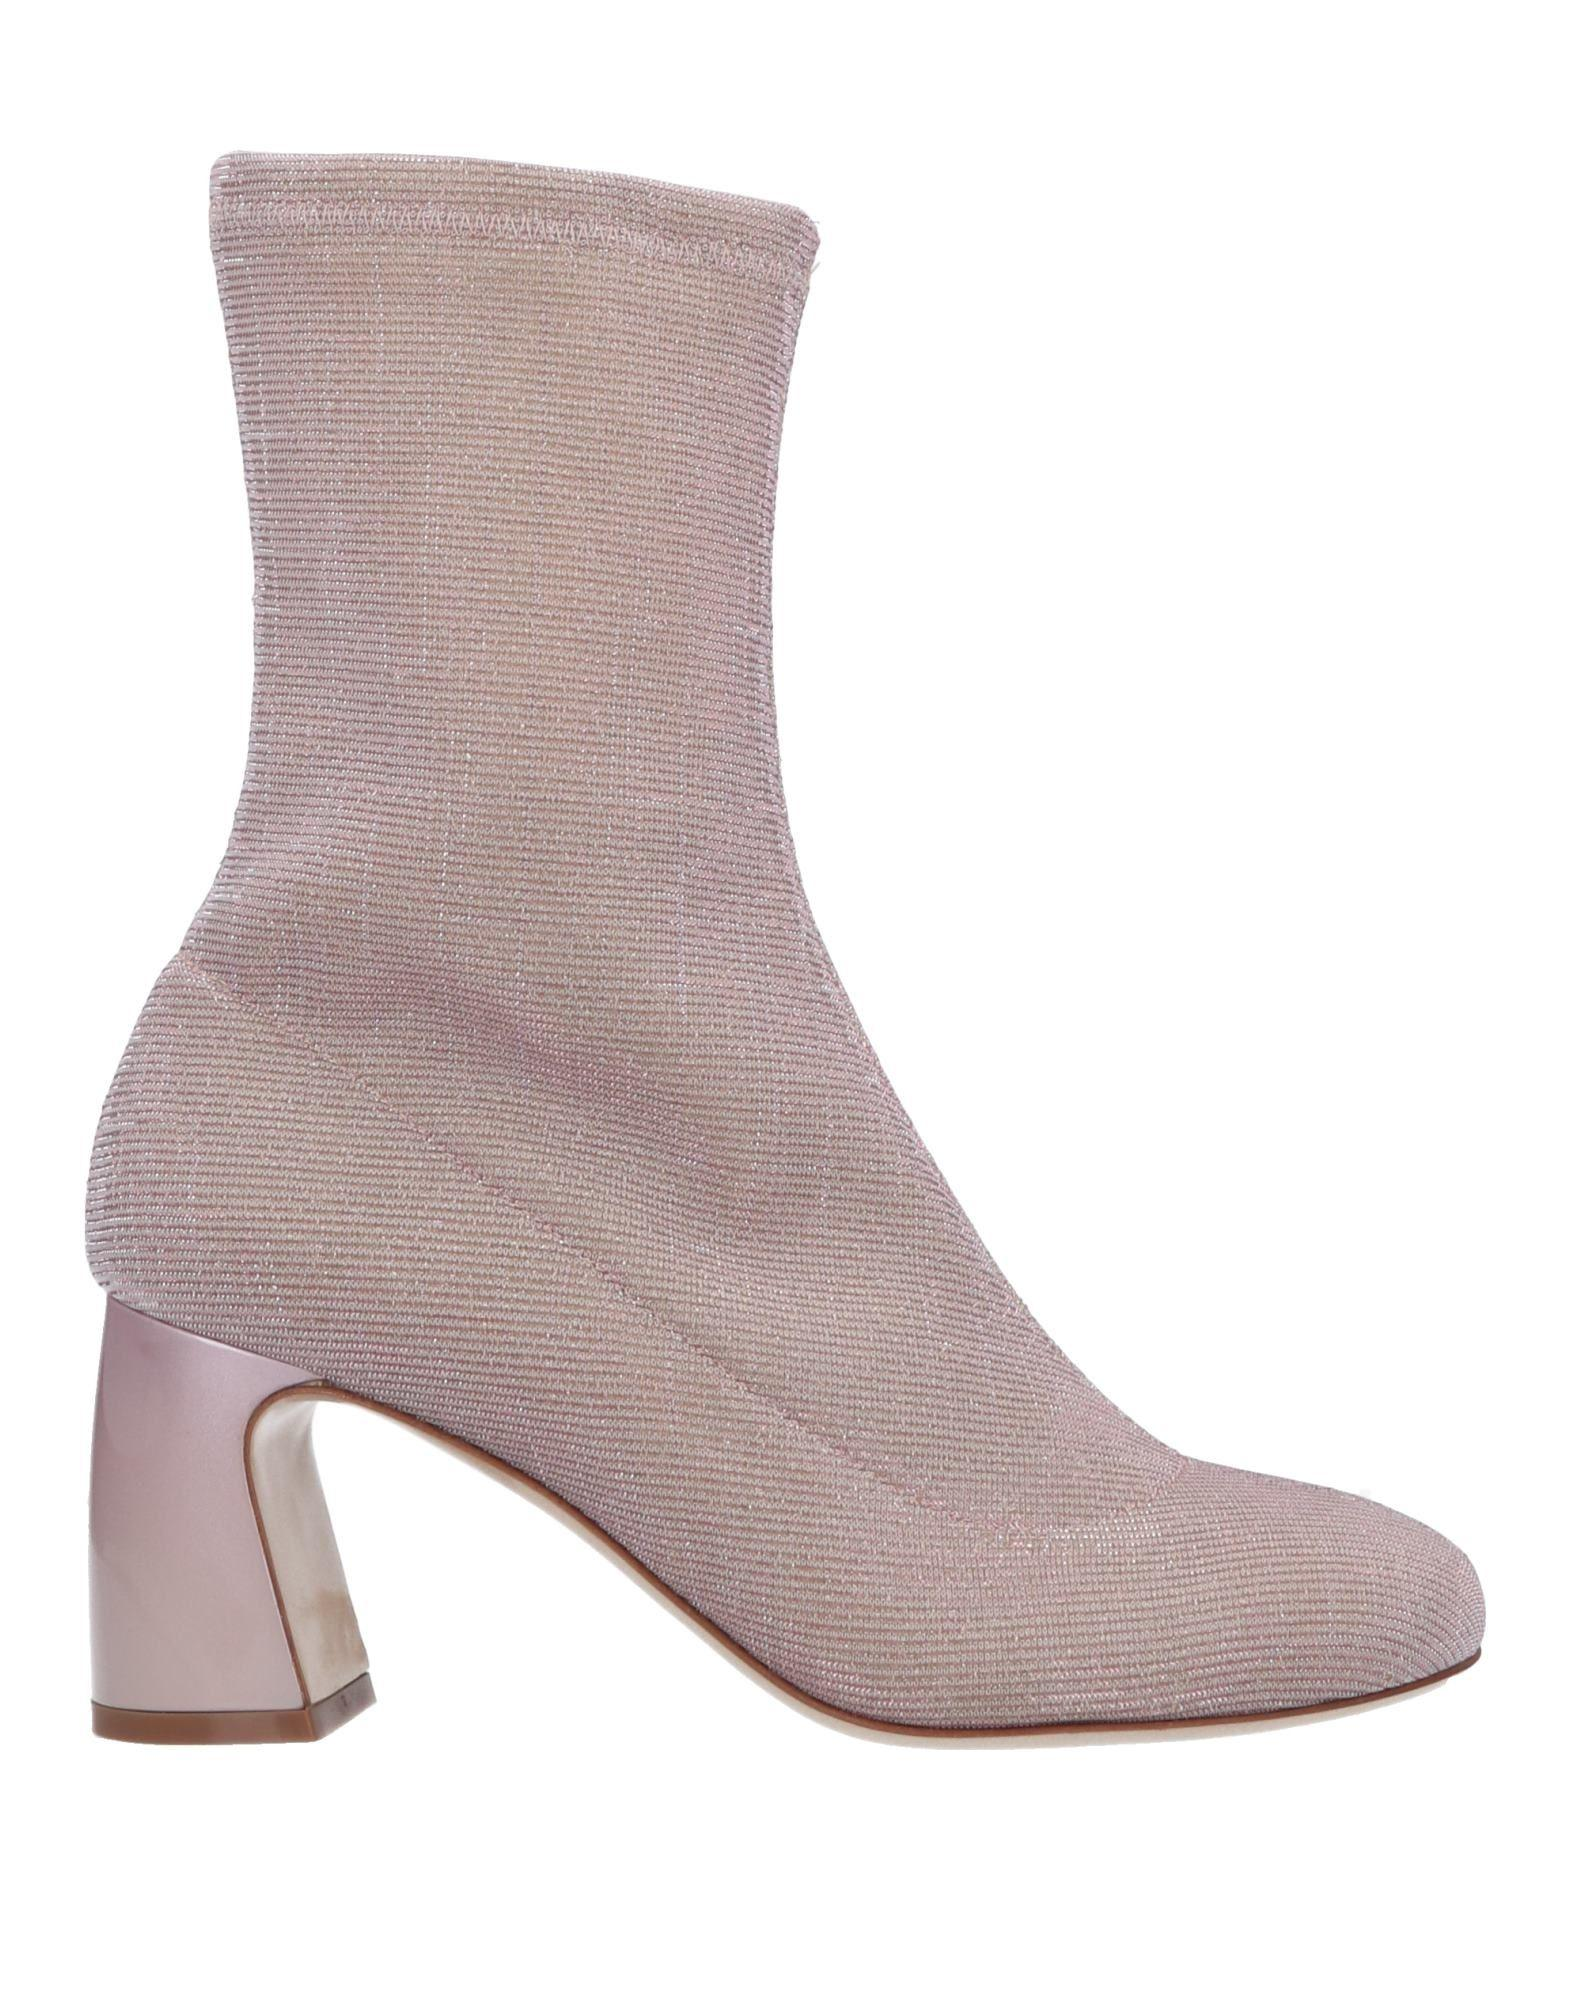 efe042261fa1 Lyst - Aldo Castagna Ankle Boots in Pink